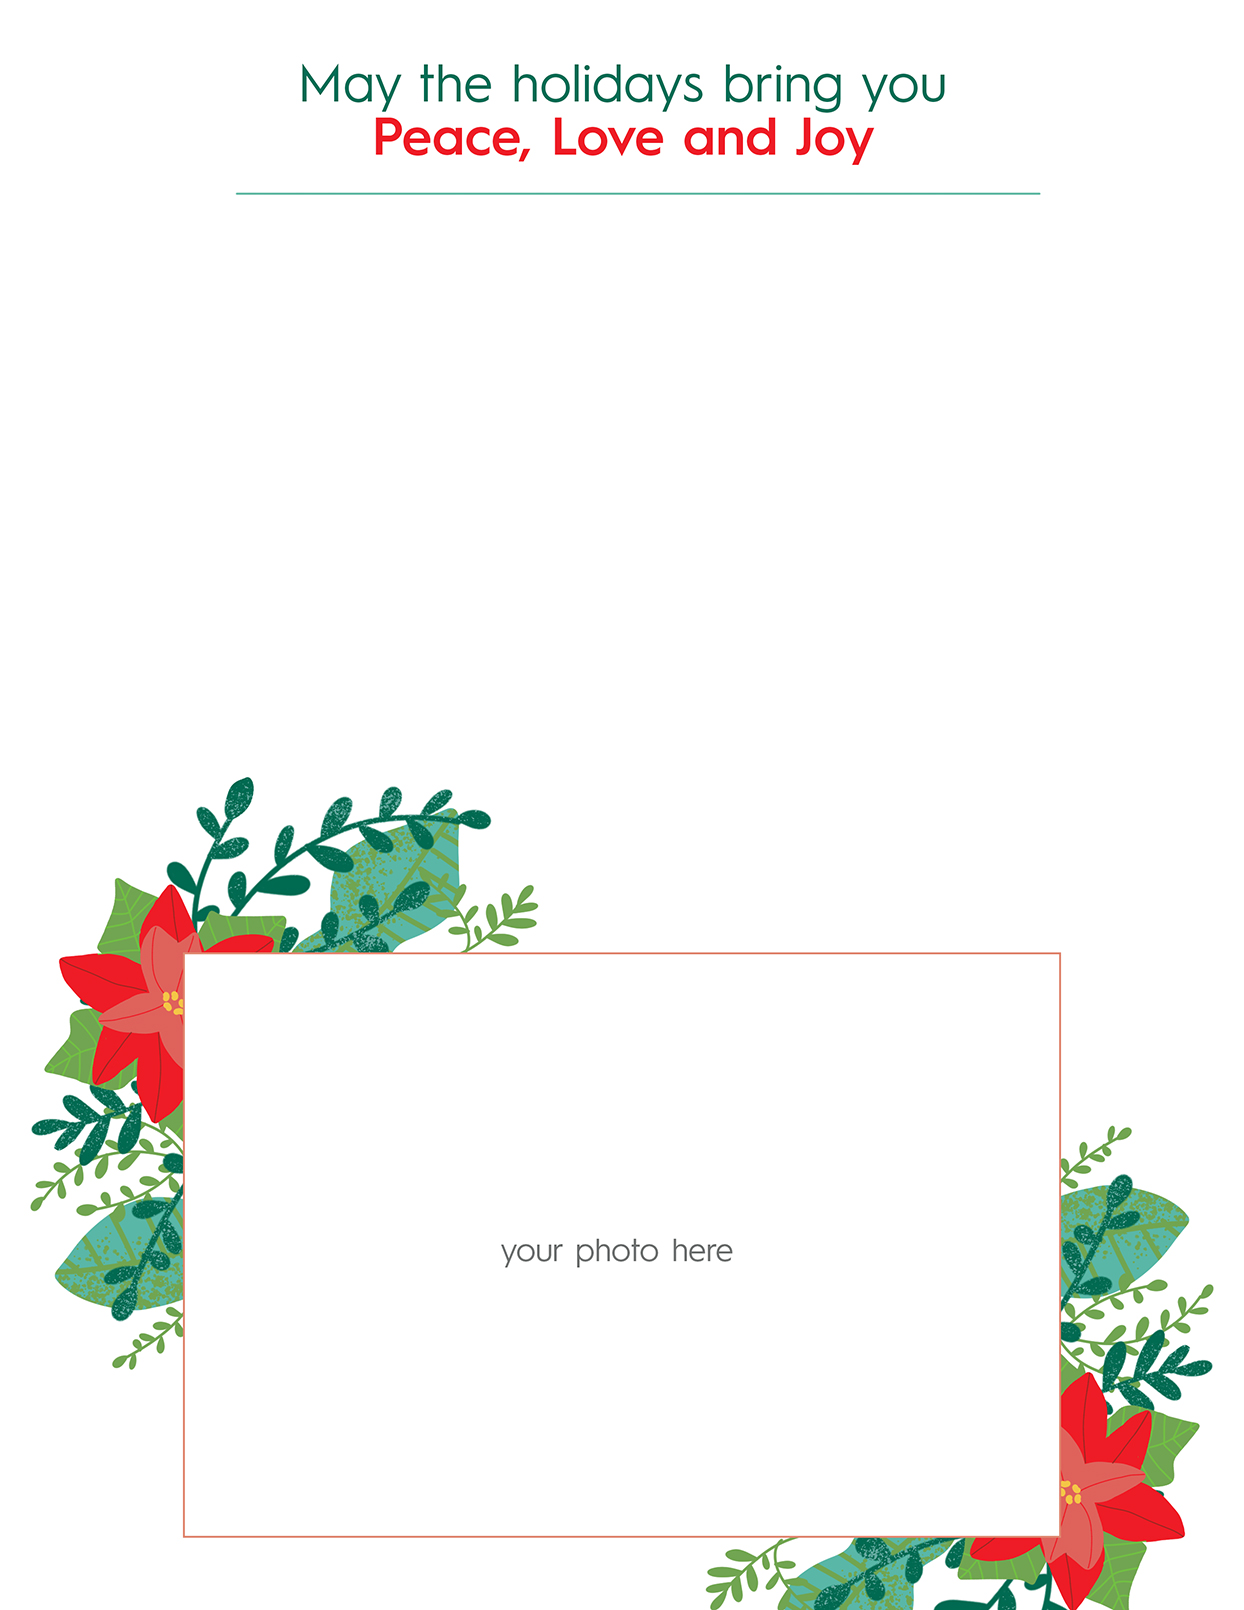 Christmas letter template with plants and place for photo